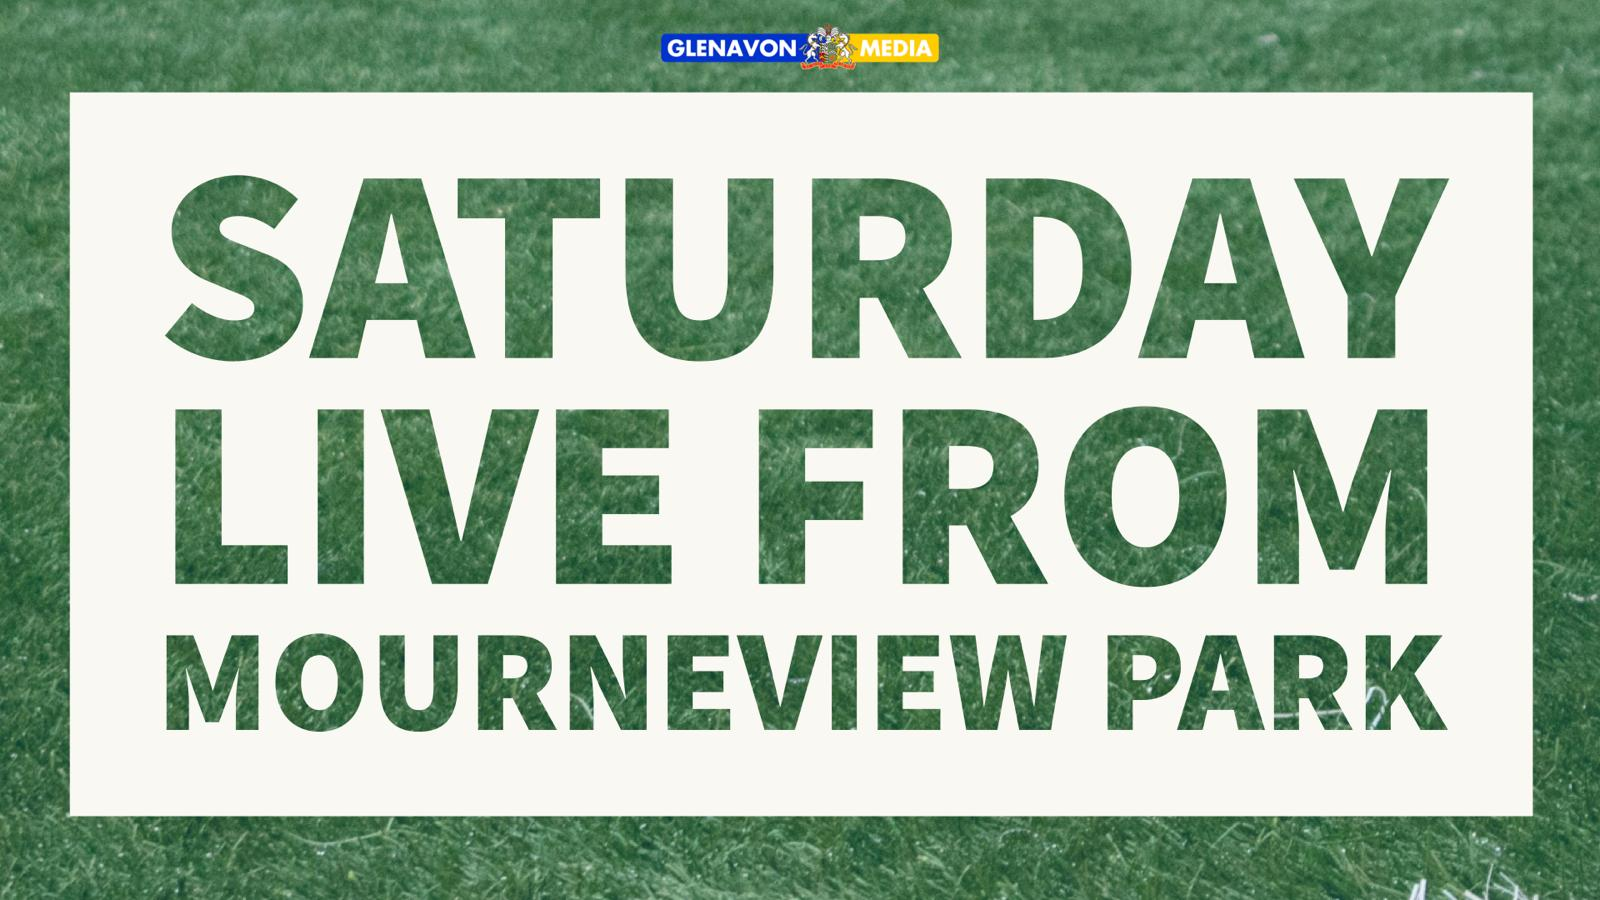 No football? No problem, with 'Saturday Live From Mourneview Park'!